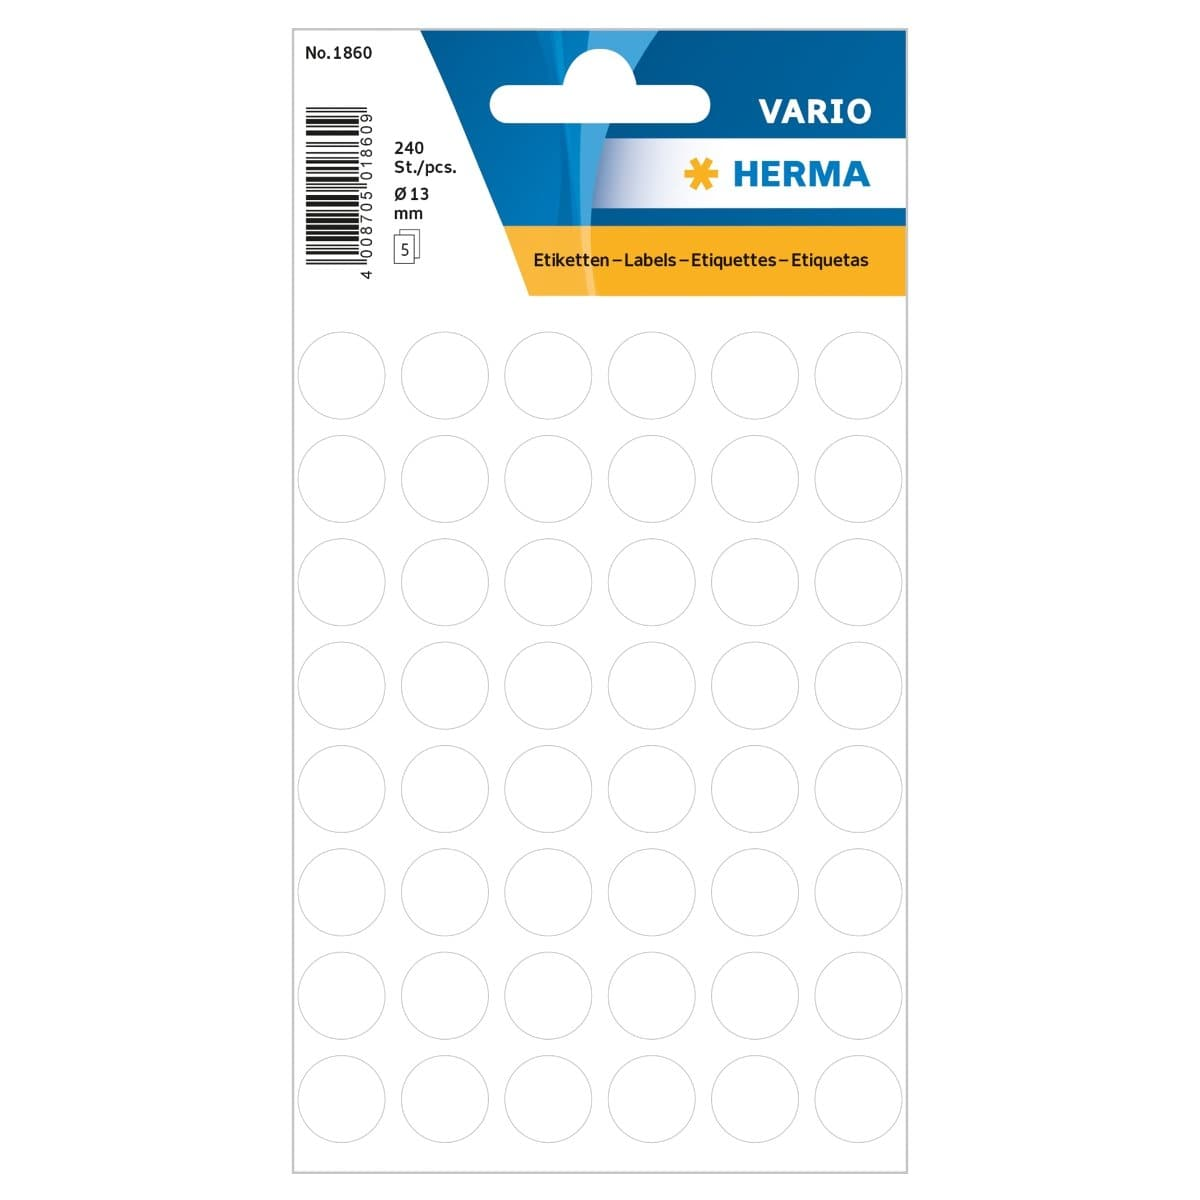 Herma Vario Sticker Color Dots, 13 mm, 240/pack, White